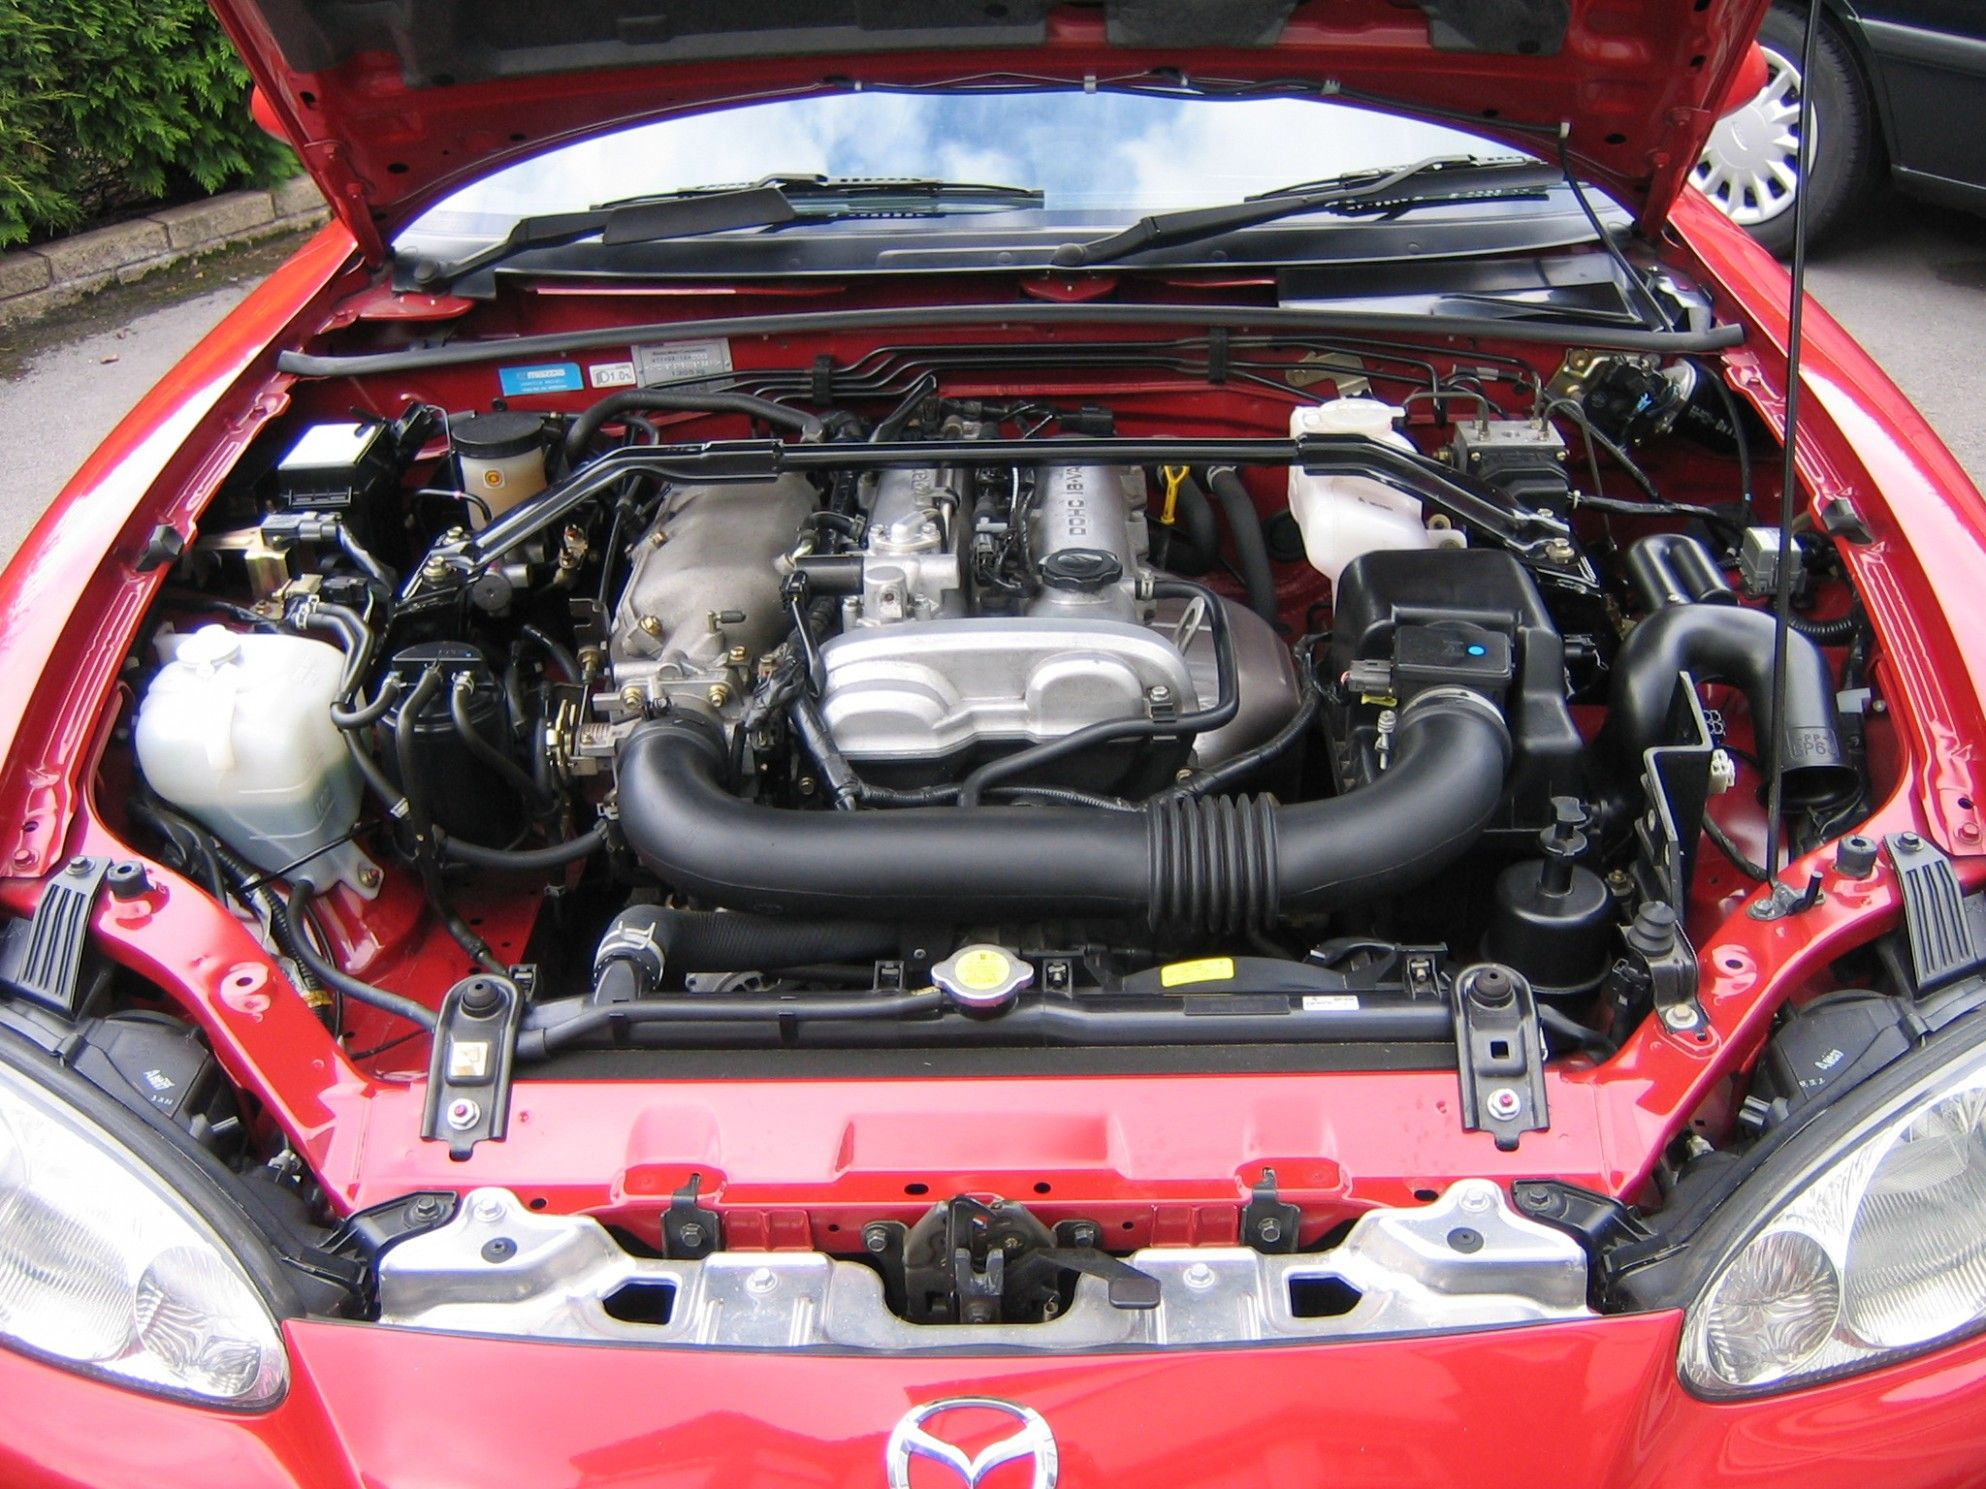 mx6 nb engine bay diagram in 2020 mazda mx5 mazda mx mazda mx6 nb engine bay diagram in 2020